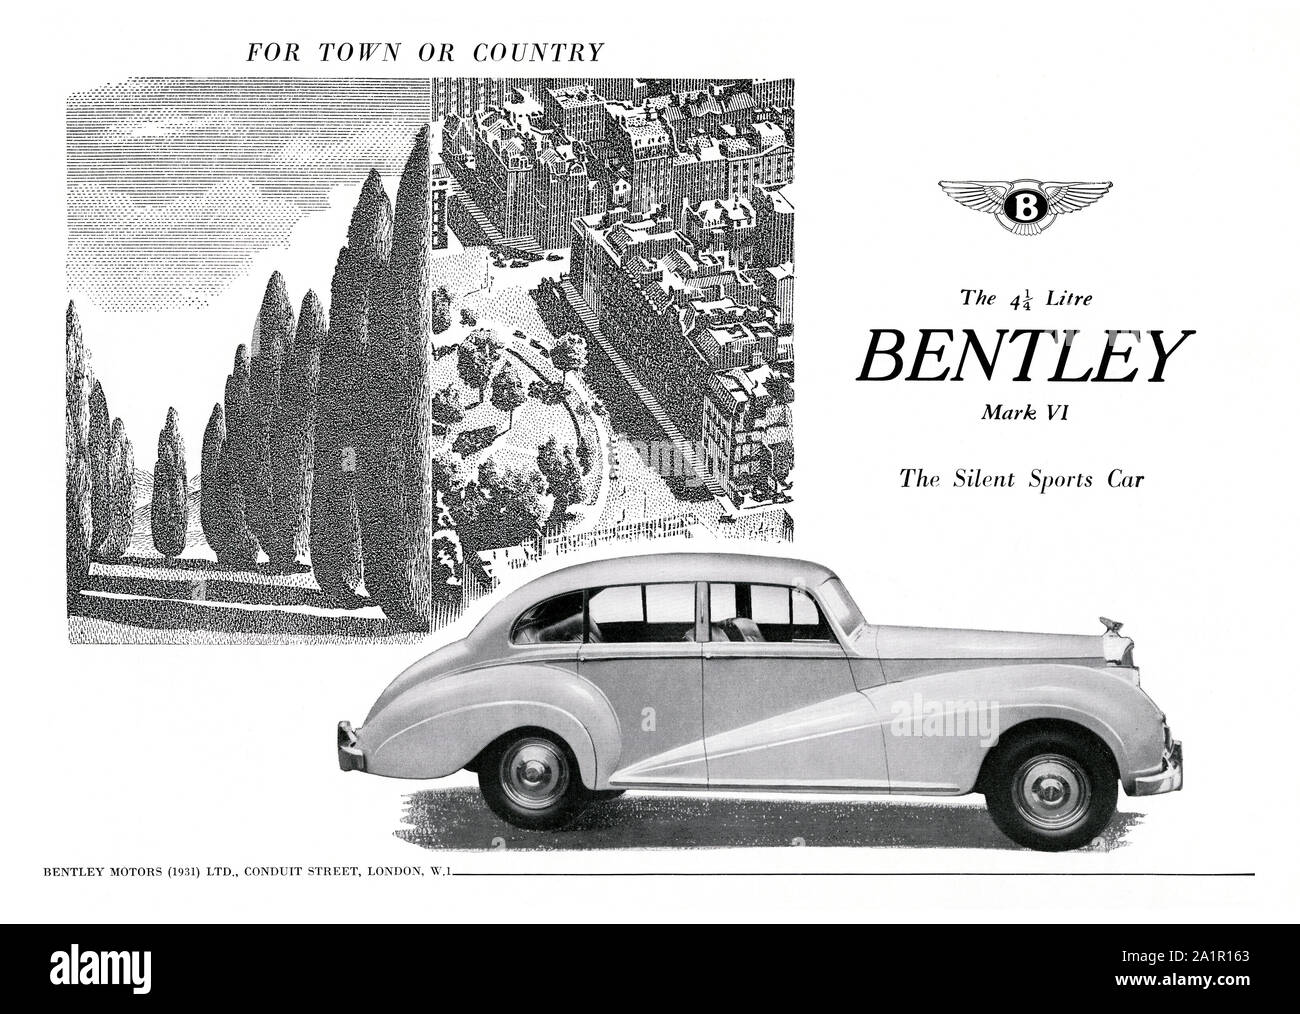 Advert for the Bentley Mark VI sports car, 1951. The Mark VI 4-door standard steel sports saloon was the first post-war luxury car from Bentley. It was also both the first car from Rolls-Royce with all-steel coachwork and the first complete car assembled and finished at their factory. Stock Photo